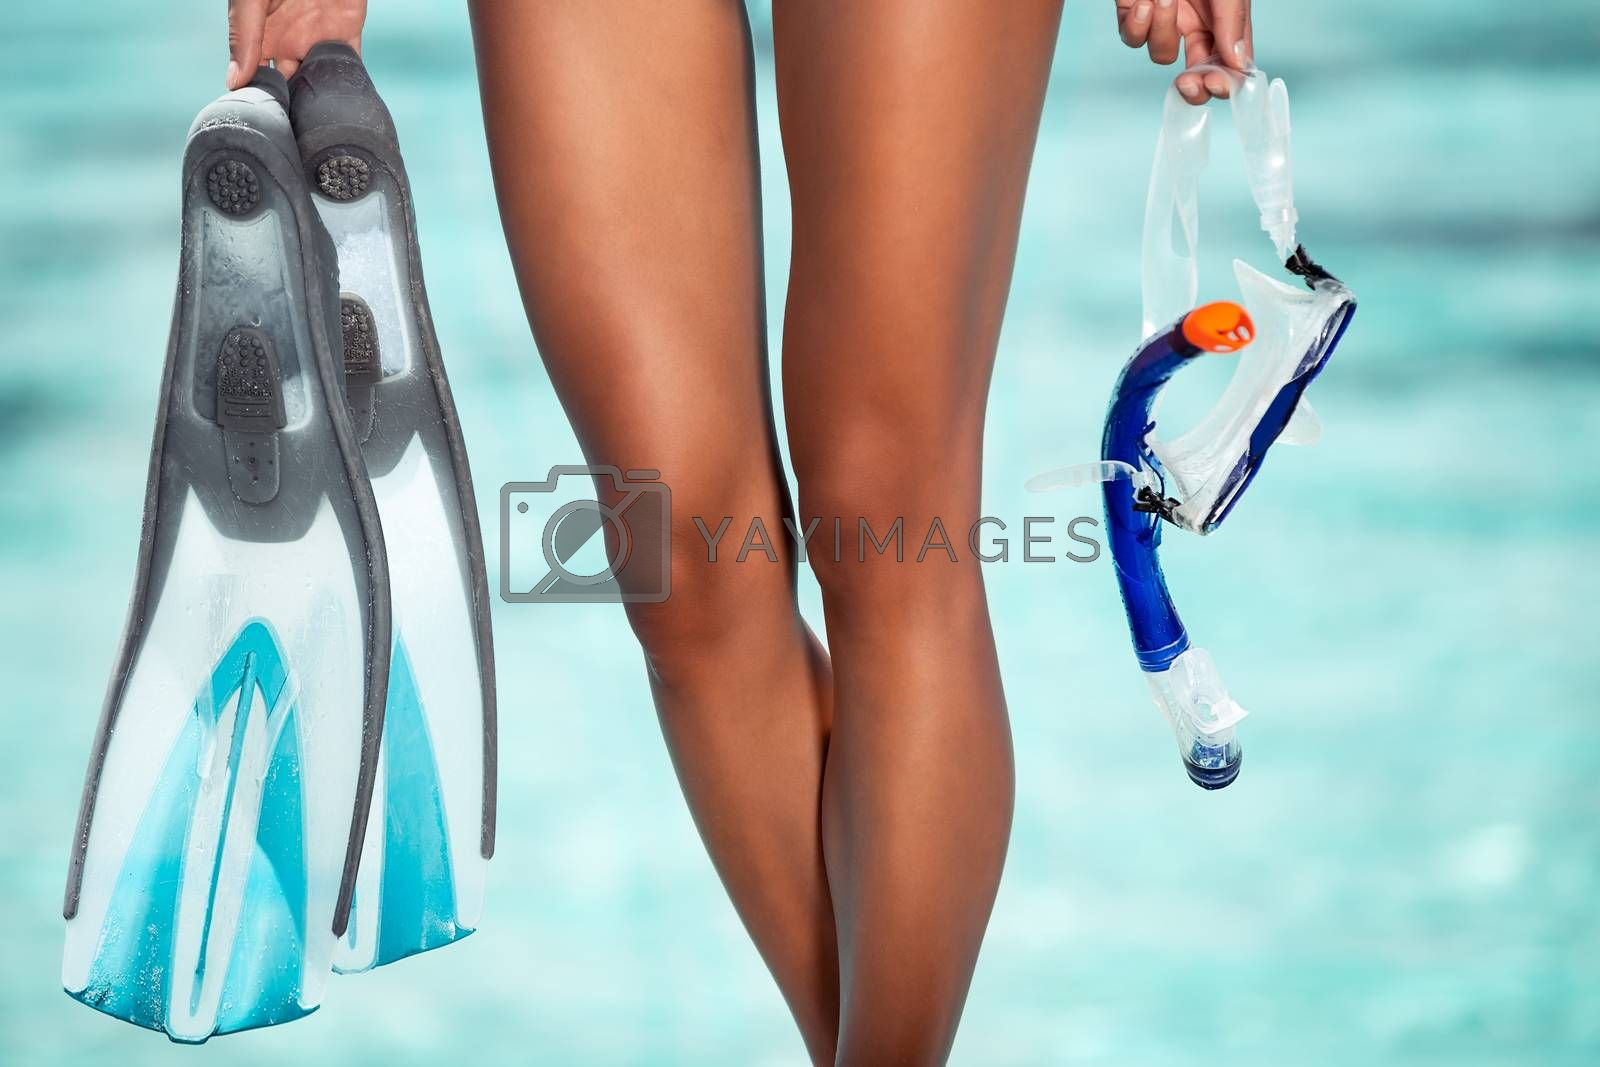 Photo of woman on the beach standing with snorkeling equipment in hands, body part, enjoying water sports, exotic summer vacation, Maldives islands